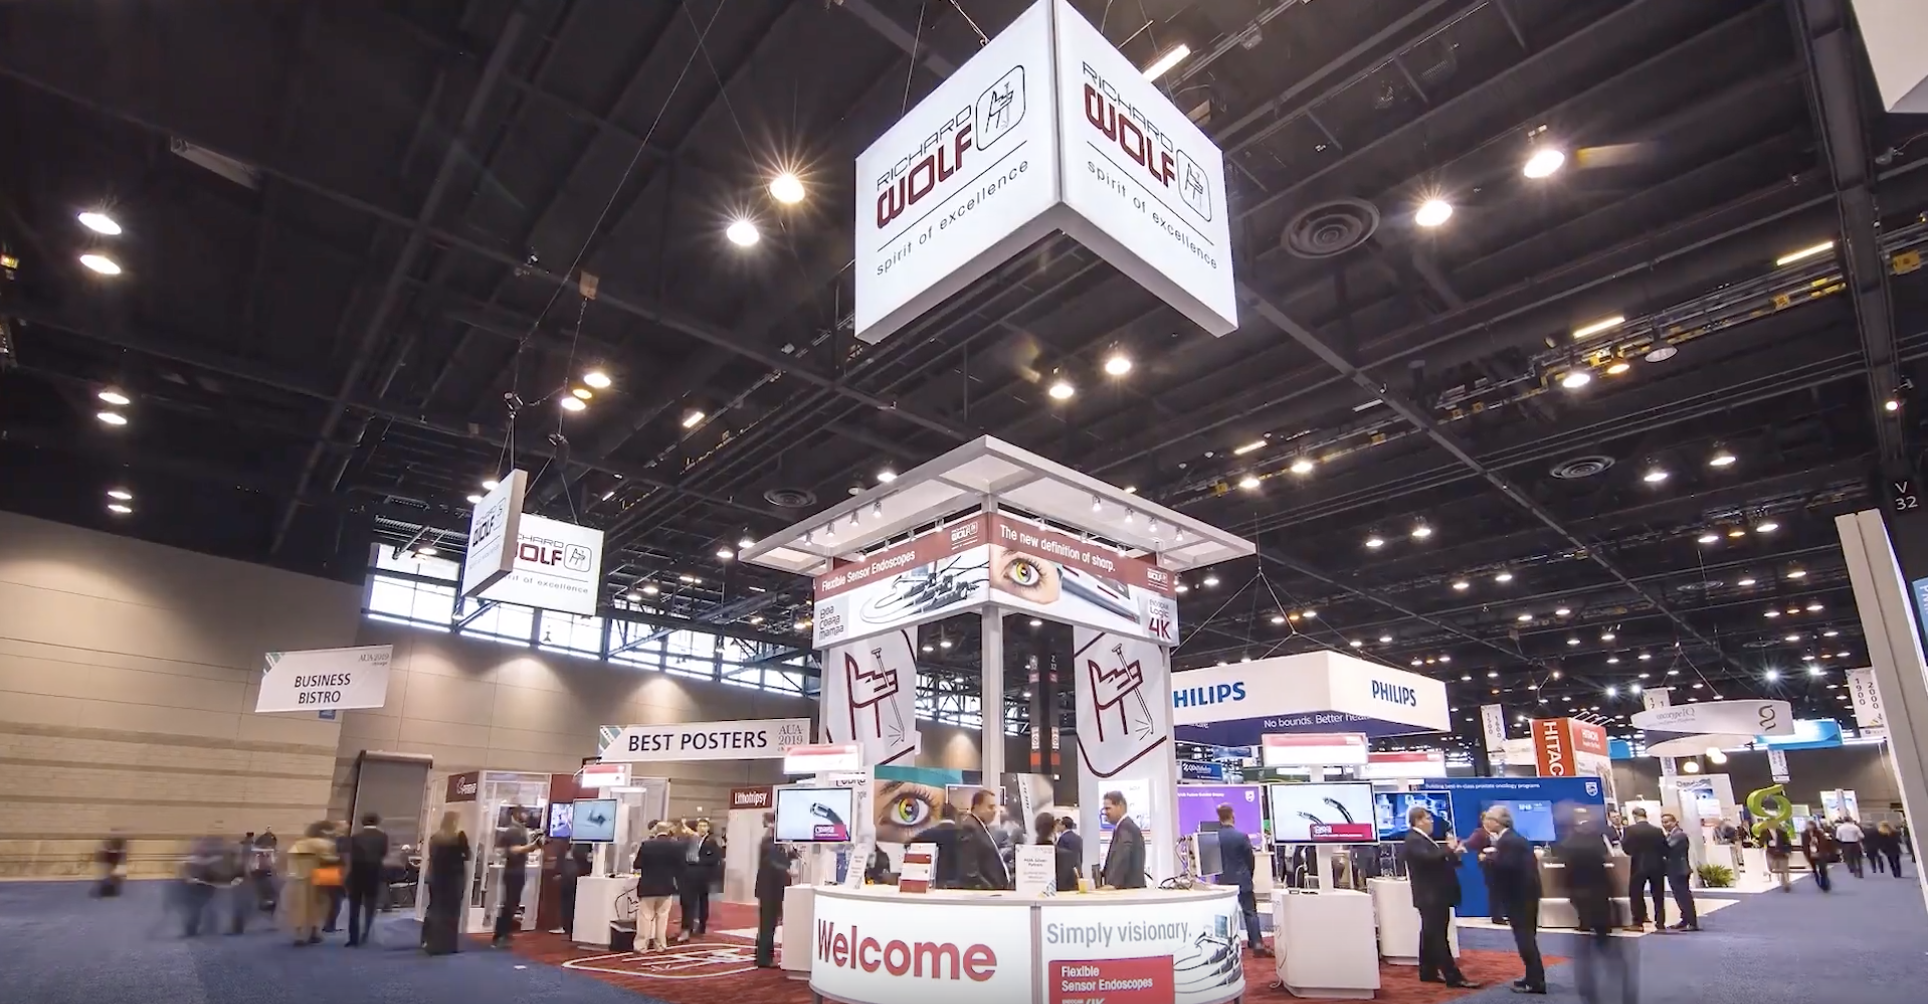 CONVENTION HIGHLIGHT VIDEO - MCP documented Richard Wolf's visionary booth at the McCormick Place Convention Center.